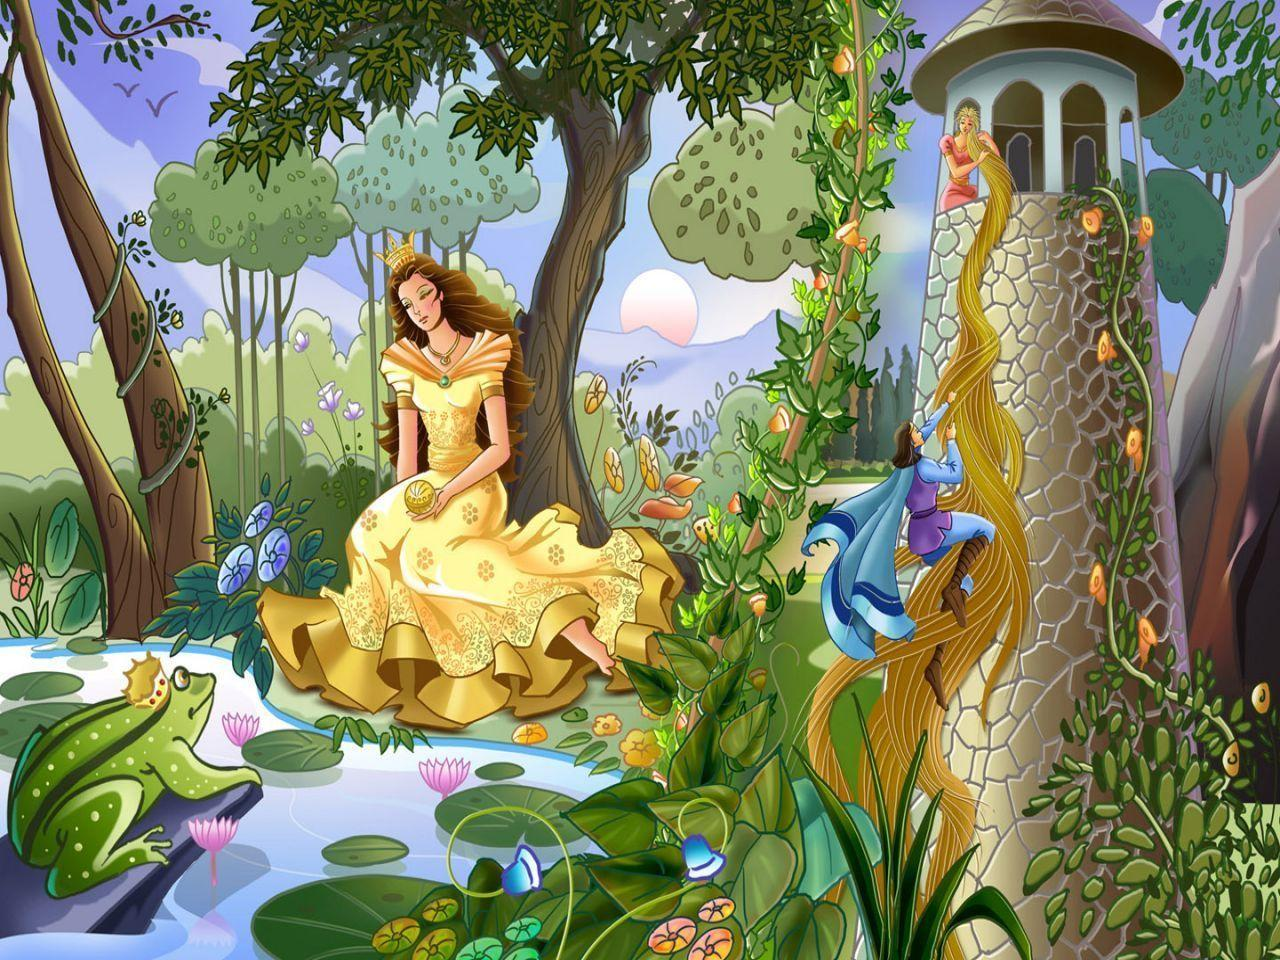 Fairy Tale Backgrounds 1280x960